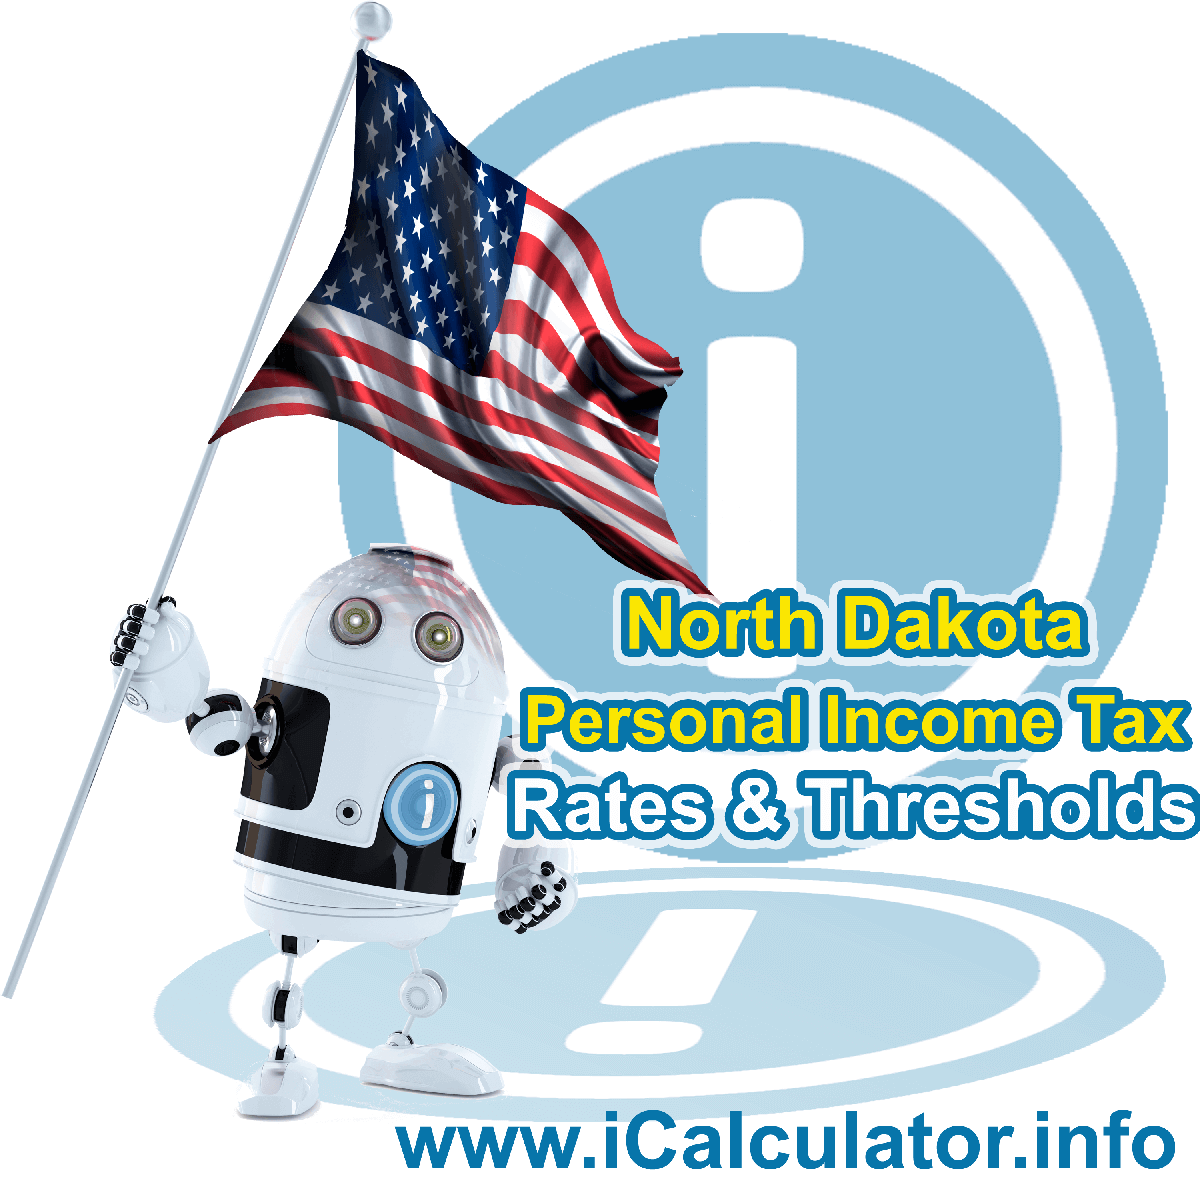 North Dakota State Tax Tables 2019. This image displays details of the North Dakota State Tax Tables for the 2019 tax return year which is provided in support of the 2019 US Tax Calculator